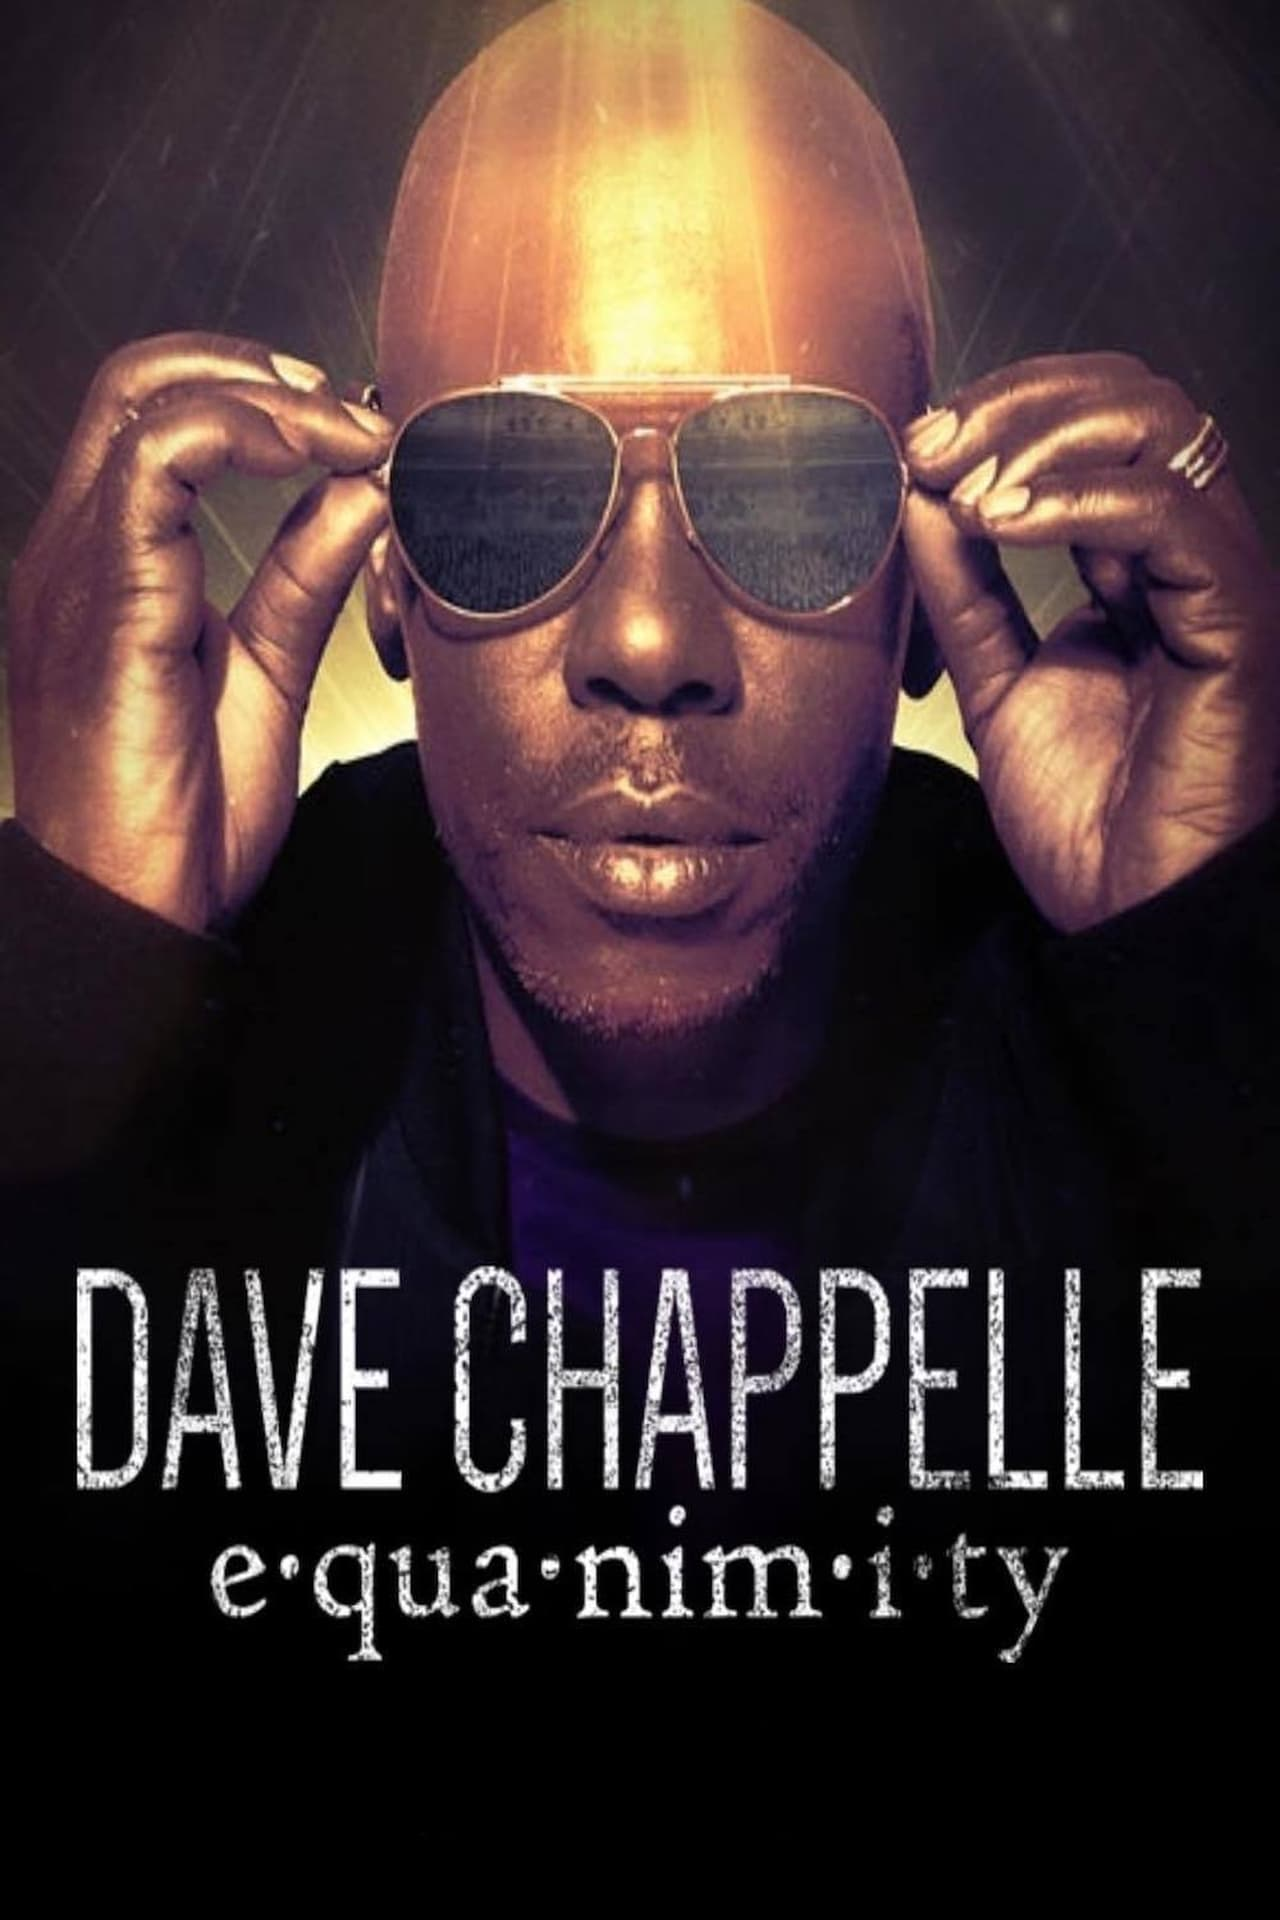 dave chappelle equanimity watch online free